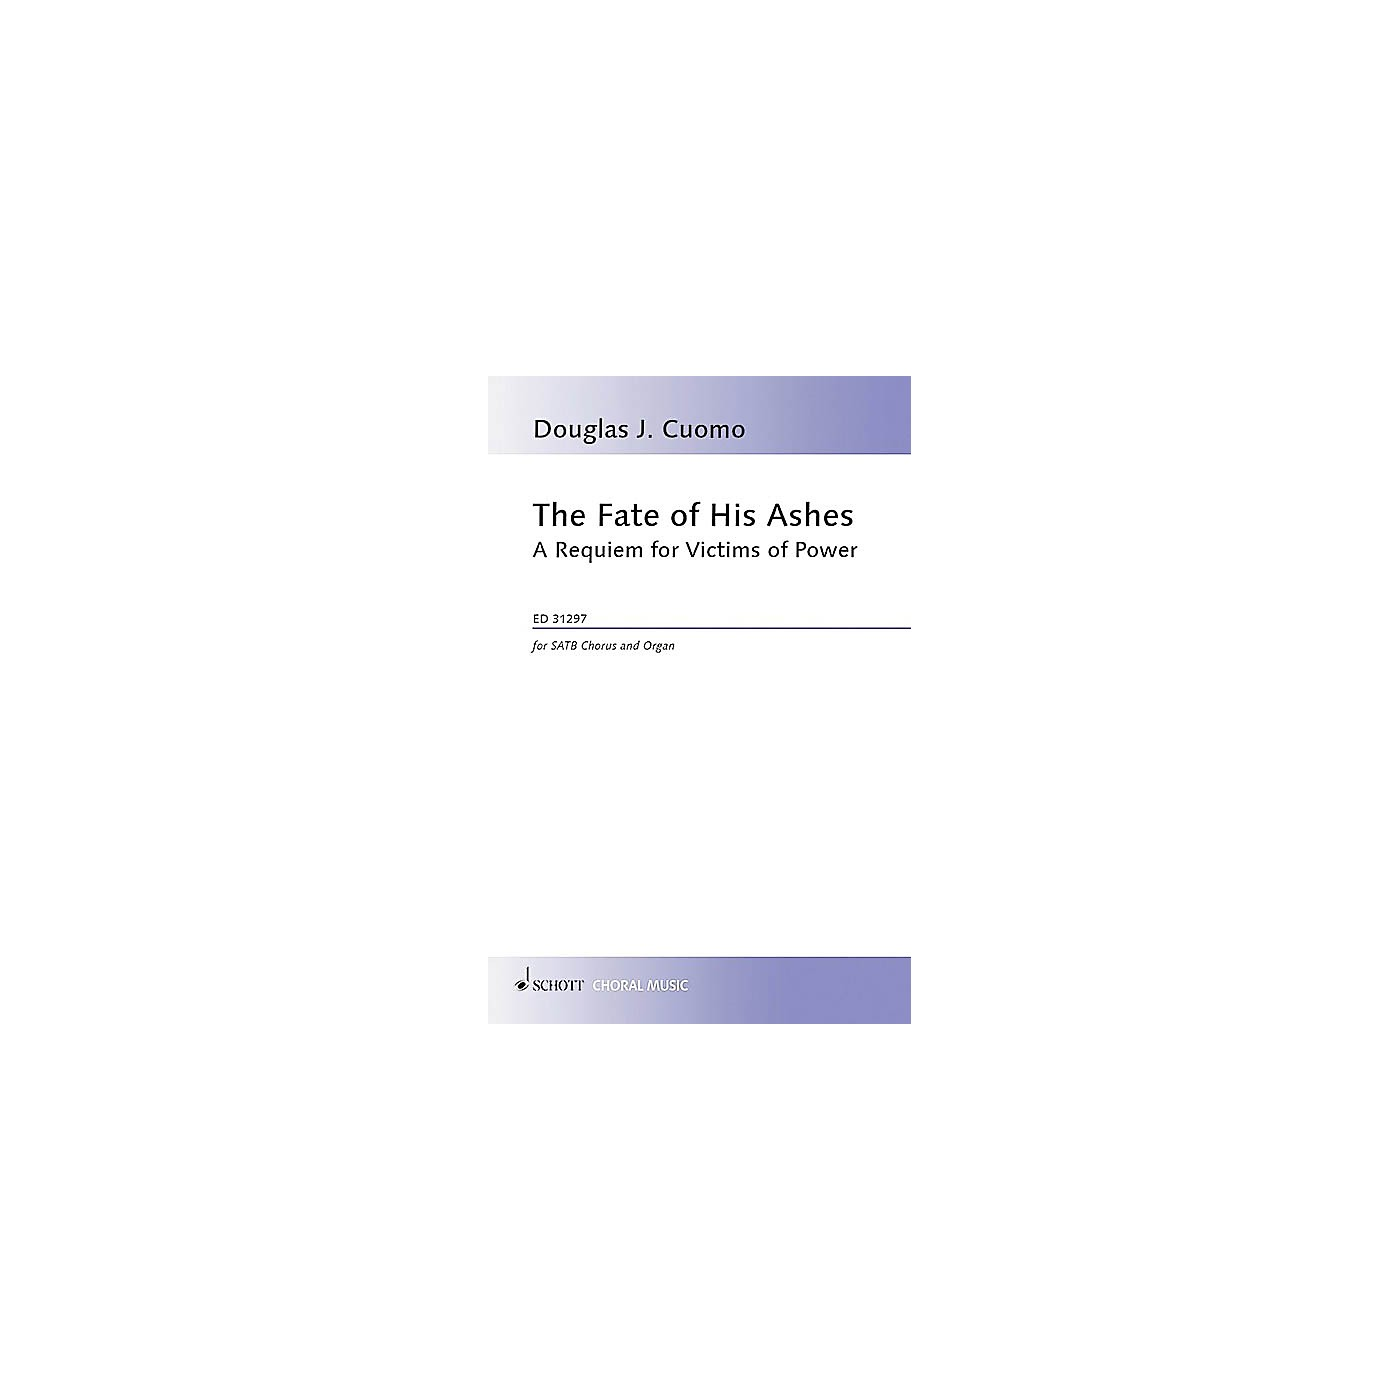 Hal Leonard The Fate Of His Ashes: A Requiem For Victims Of Power Satb/organ Schott Series Softcover thumbnail